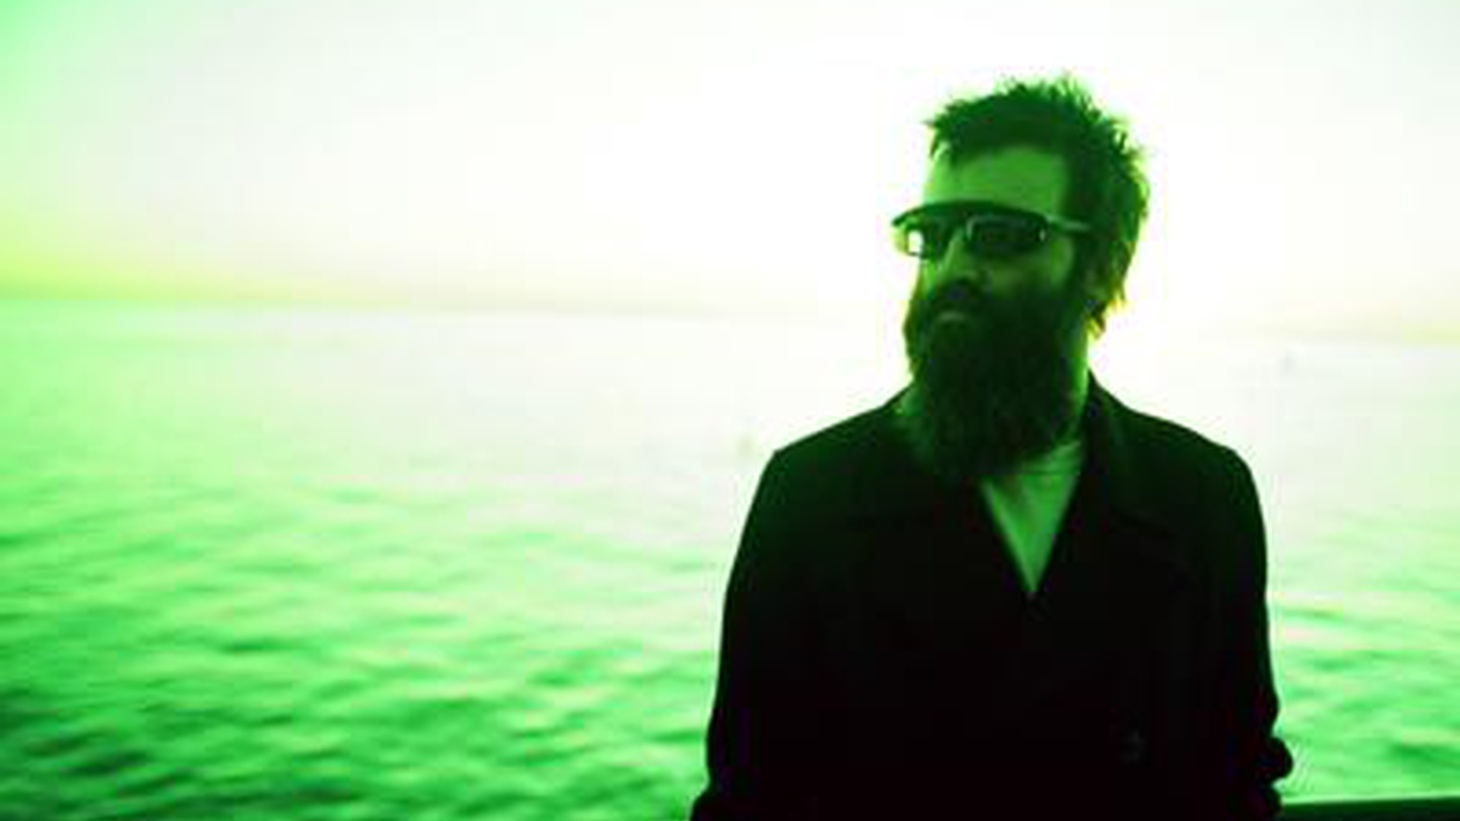 """Mark Oliver Everett, better known in the music world as Eels, transforms his suffering into beautiful songs. He candidly observes both his own state of being and the world around him. Today's Top Tune is from his upcoming release, End Times, the track is """"Mansions of Los Feliz."""""""